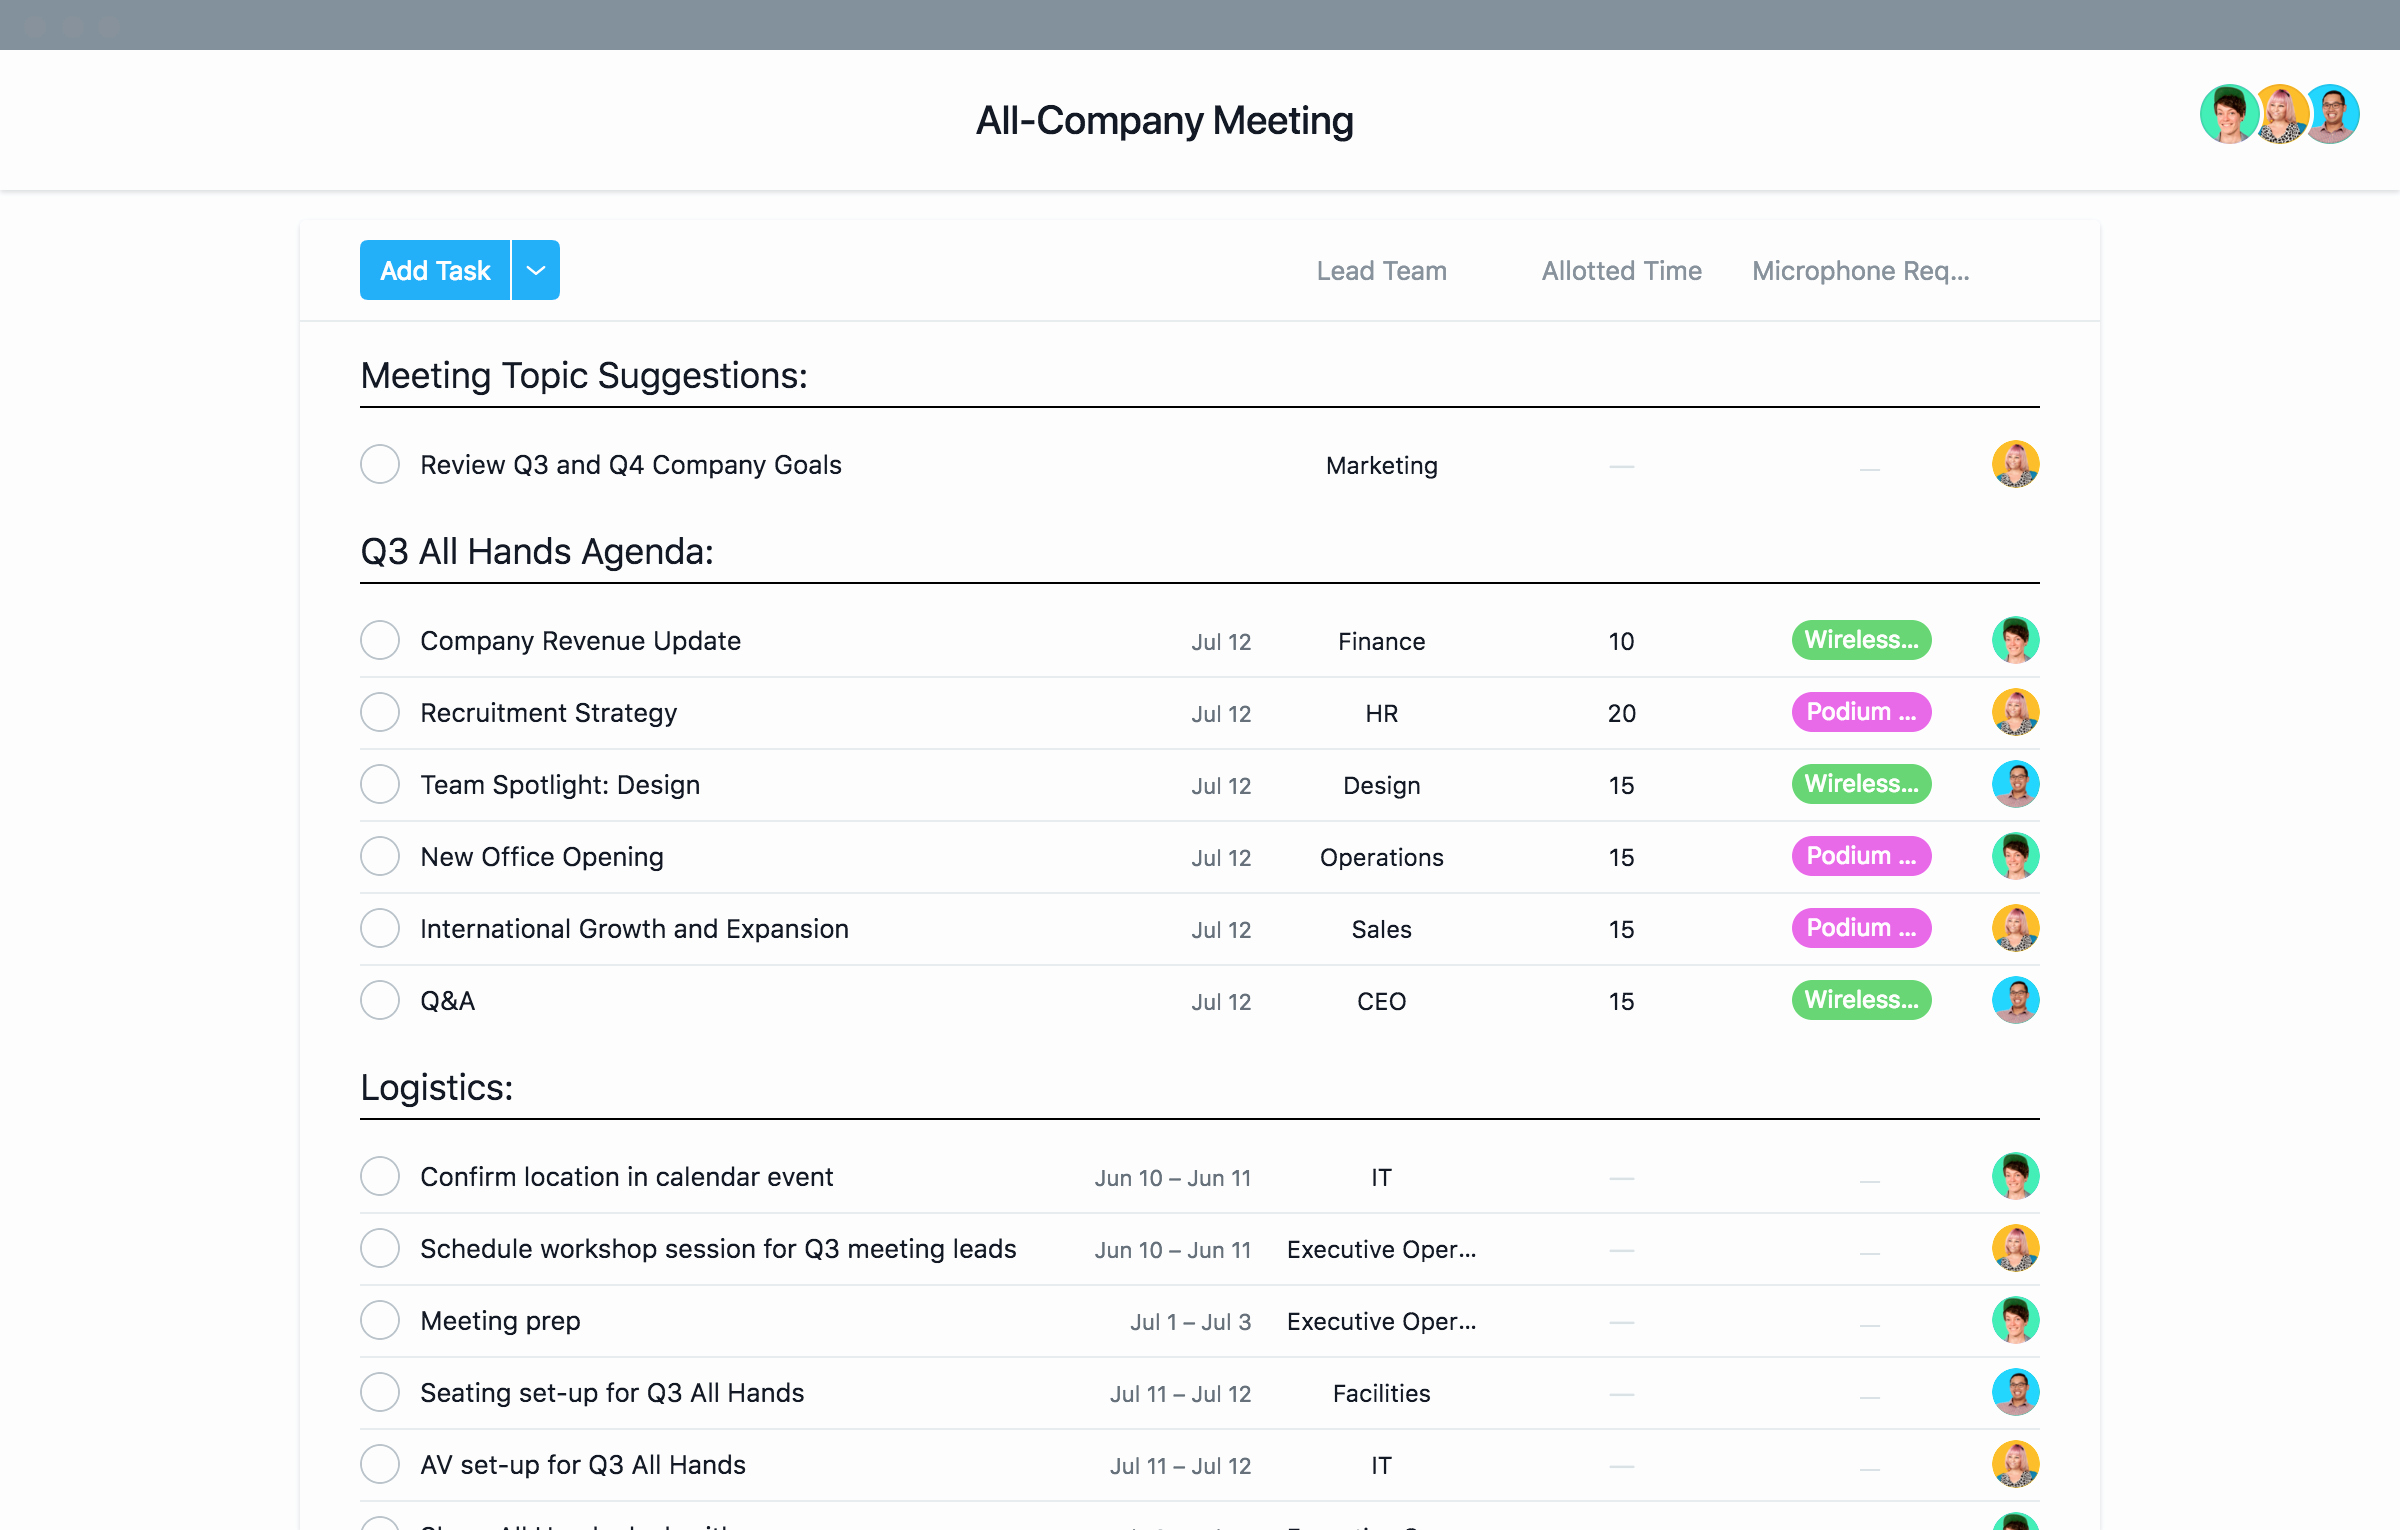 Staff Meeting Agenda Template Beautiful Staff & All Hands Meeting Agenda Template · asana